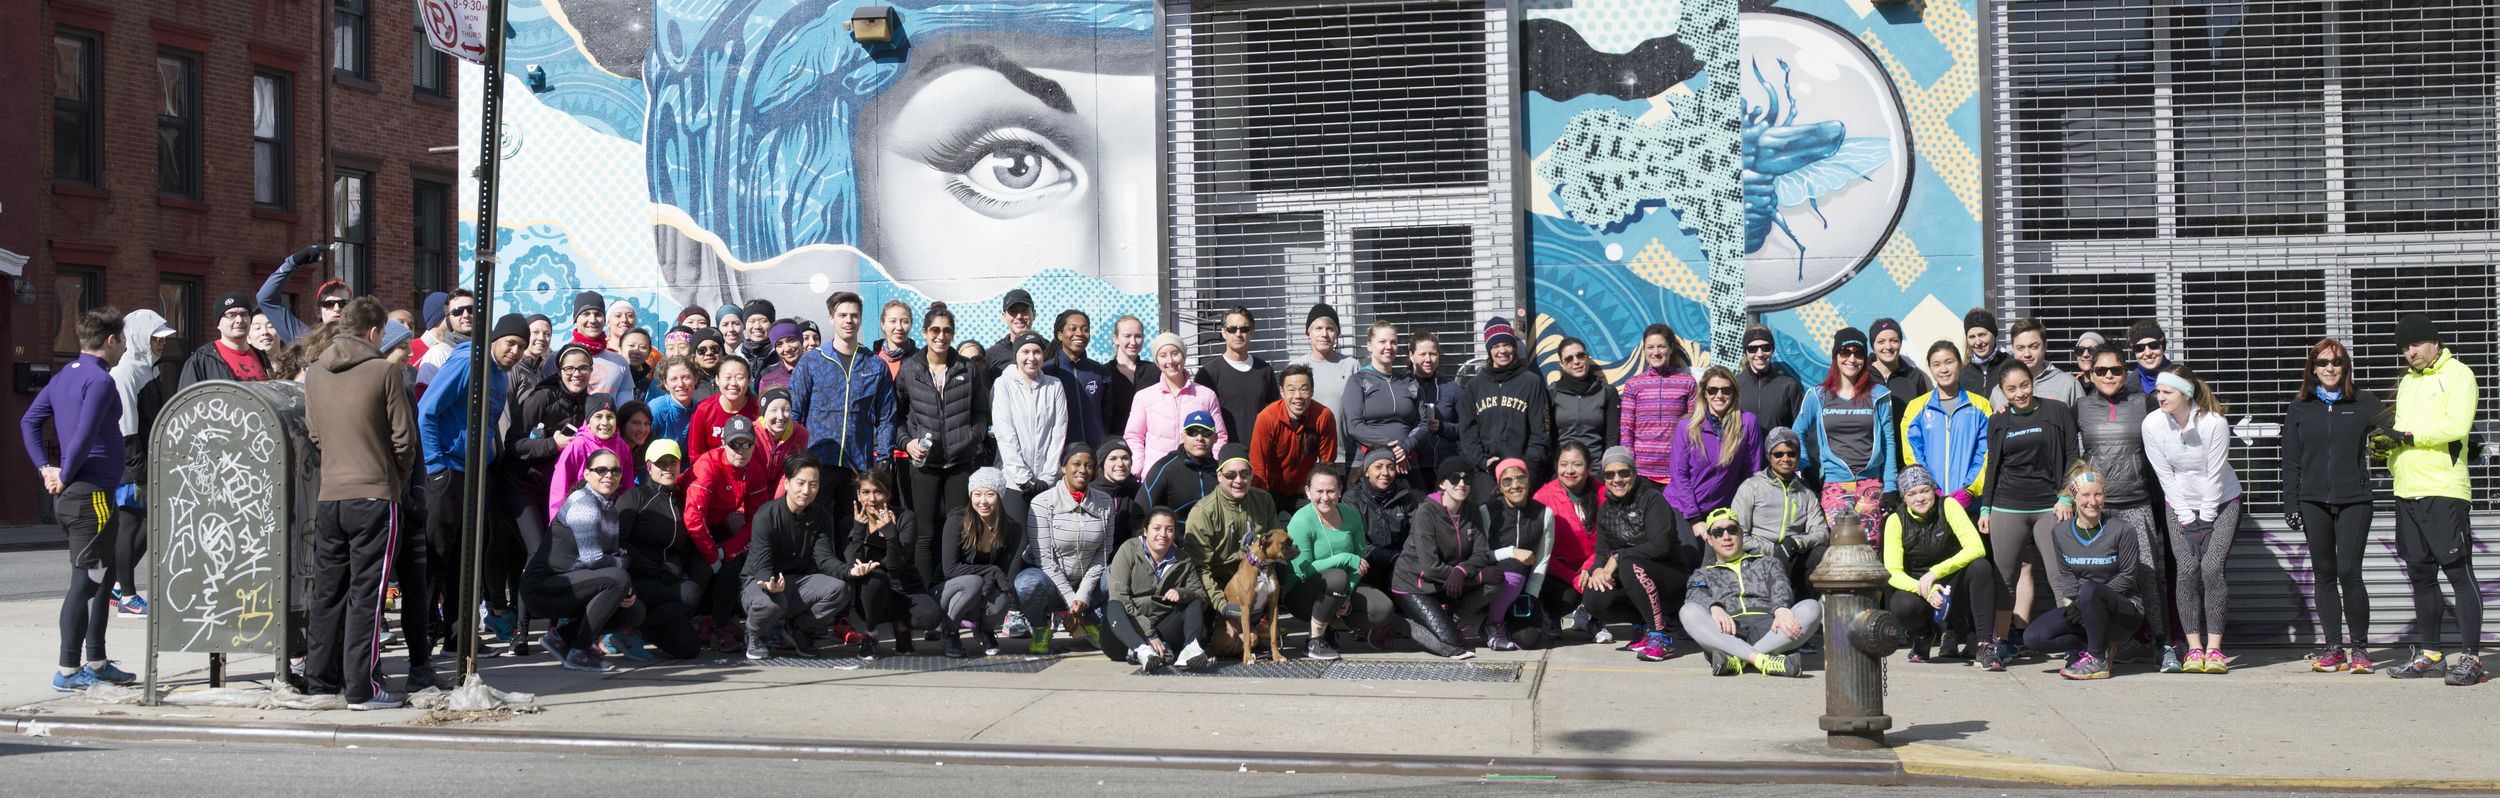 Photo by  Marques Jackson at #BkArtRun in front of Tristan Eaton mural.